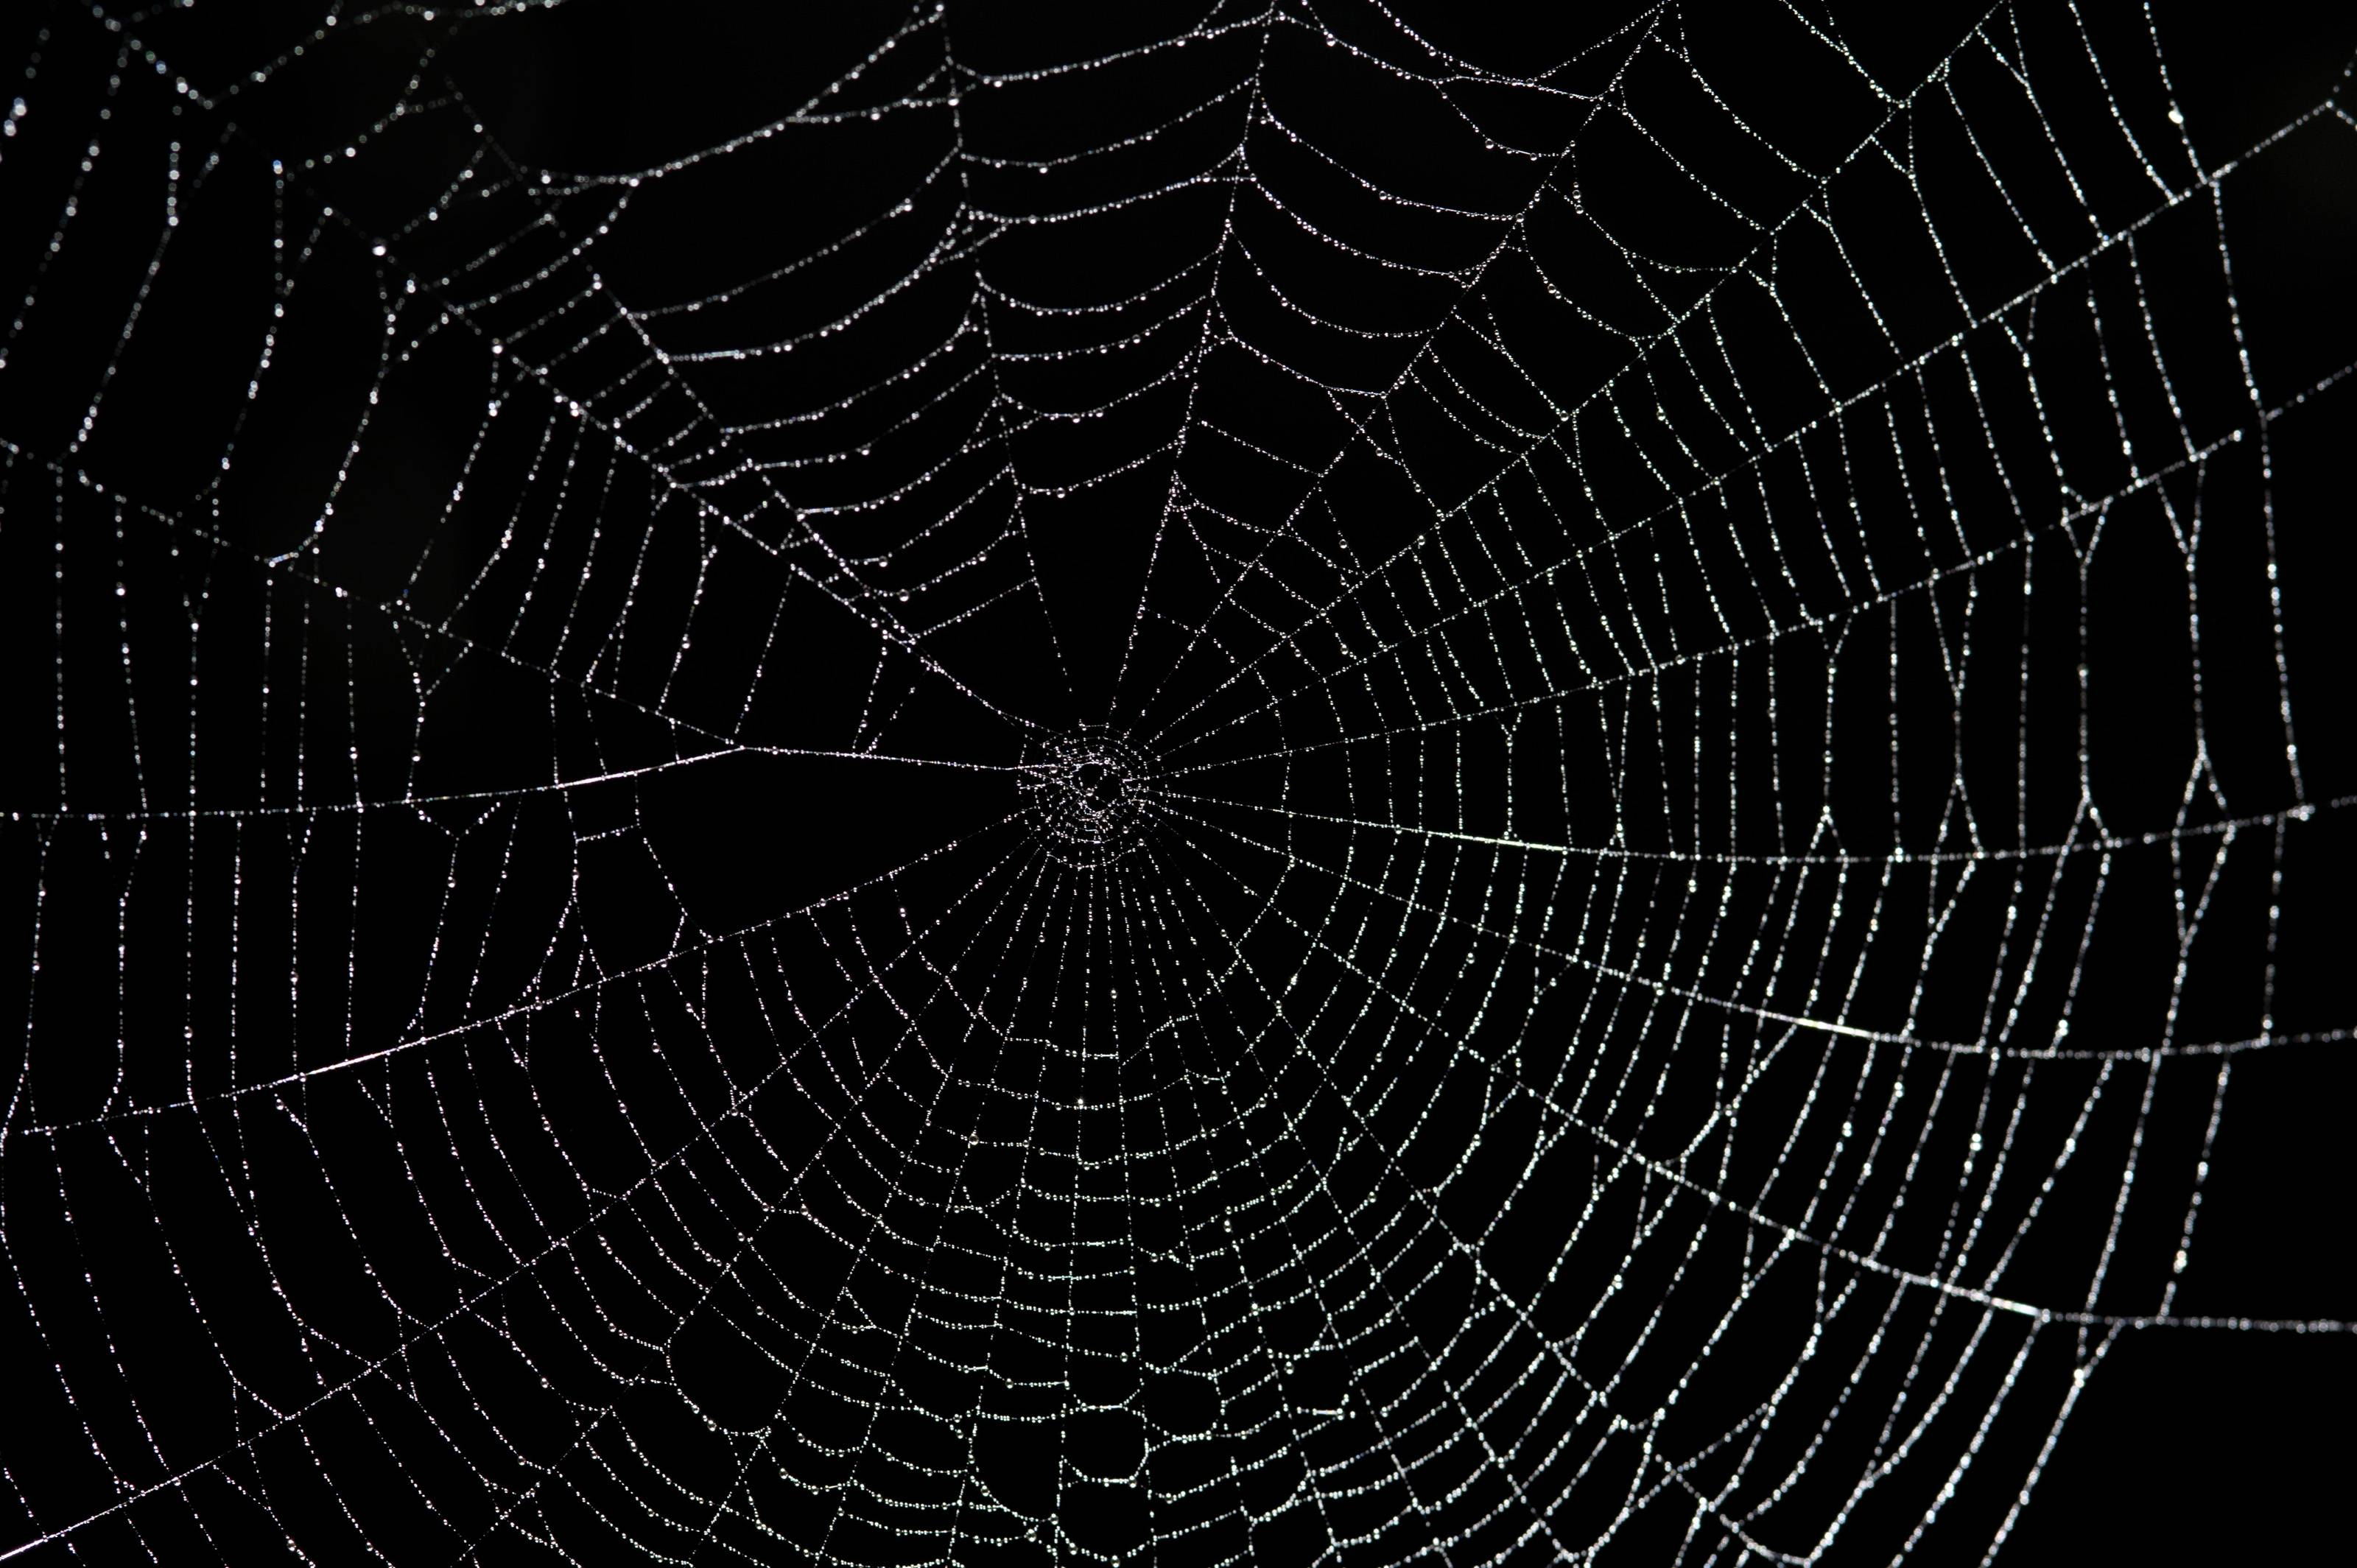 Drawn spider web cave Web Large Wallpaper Stockarch web